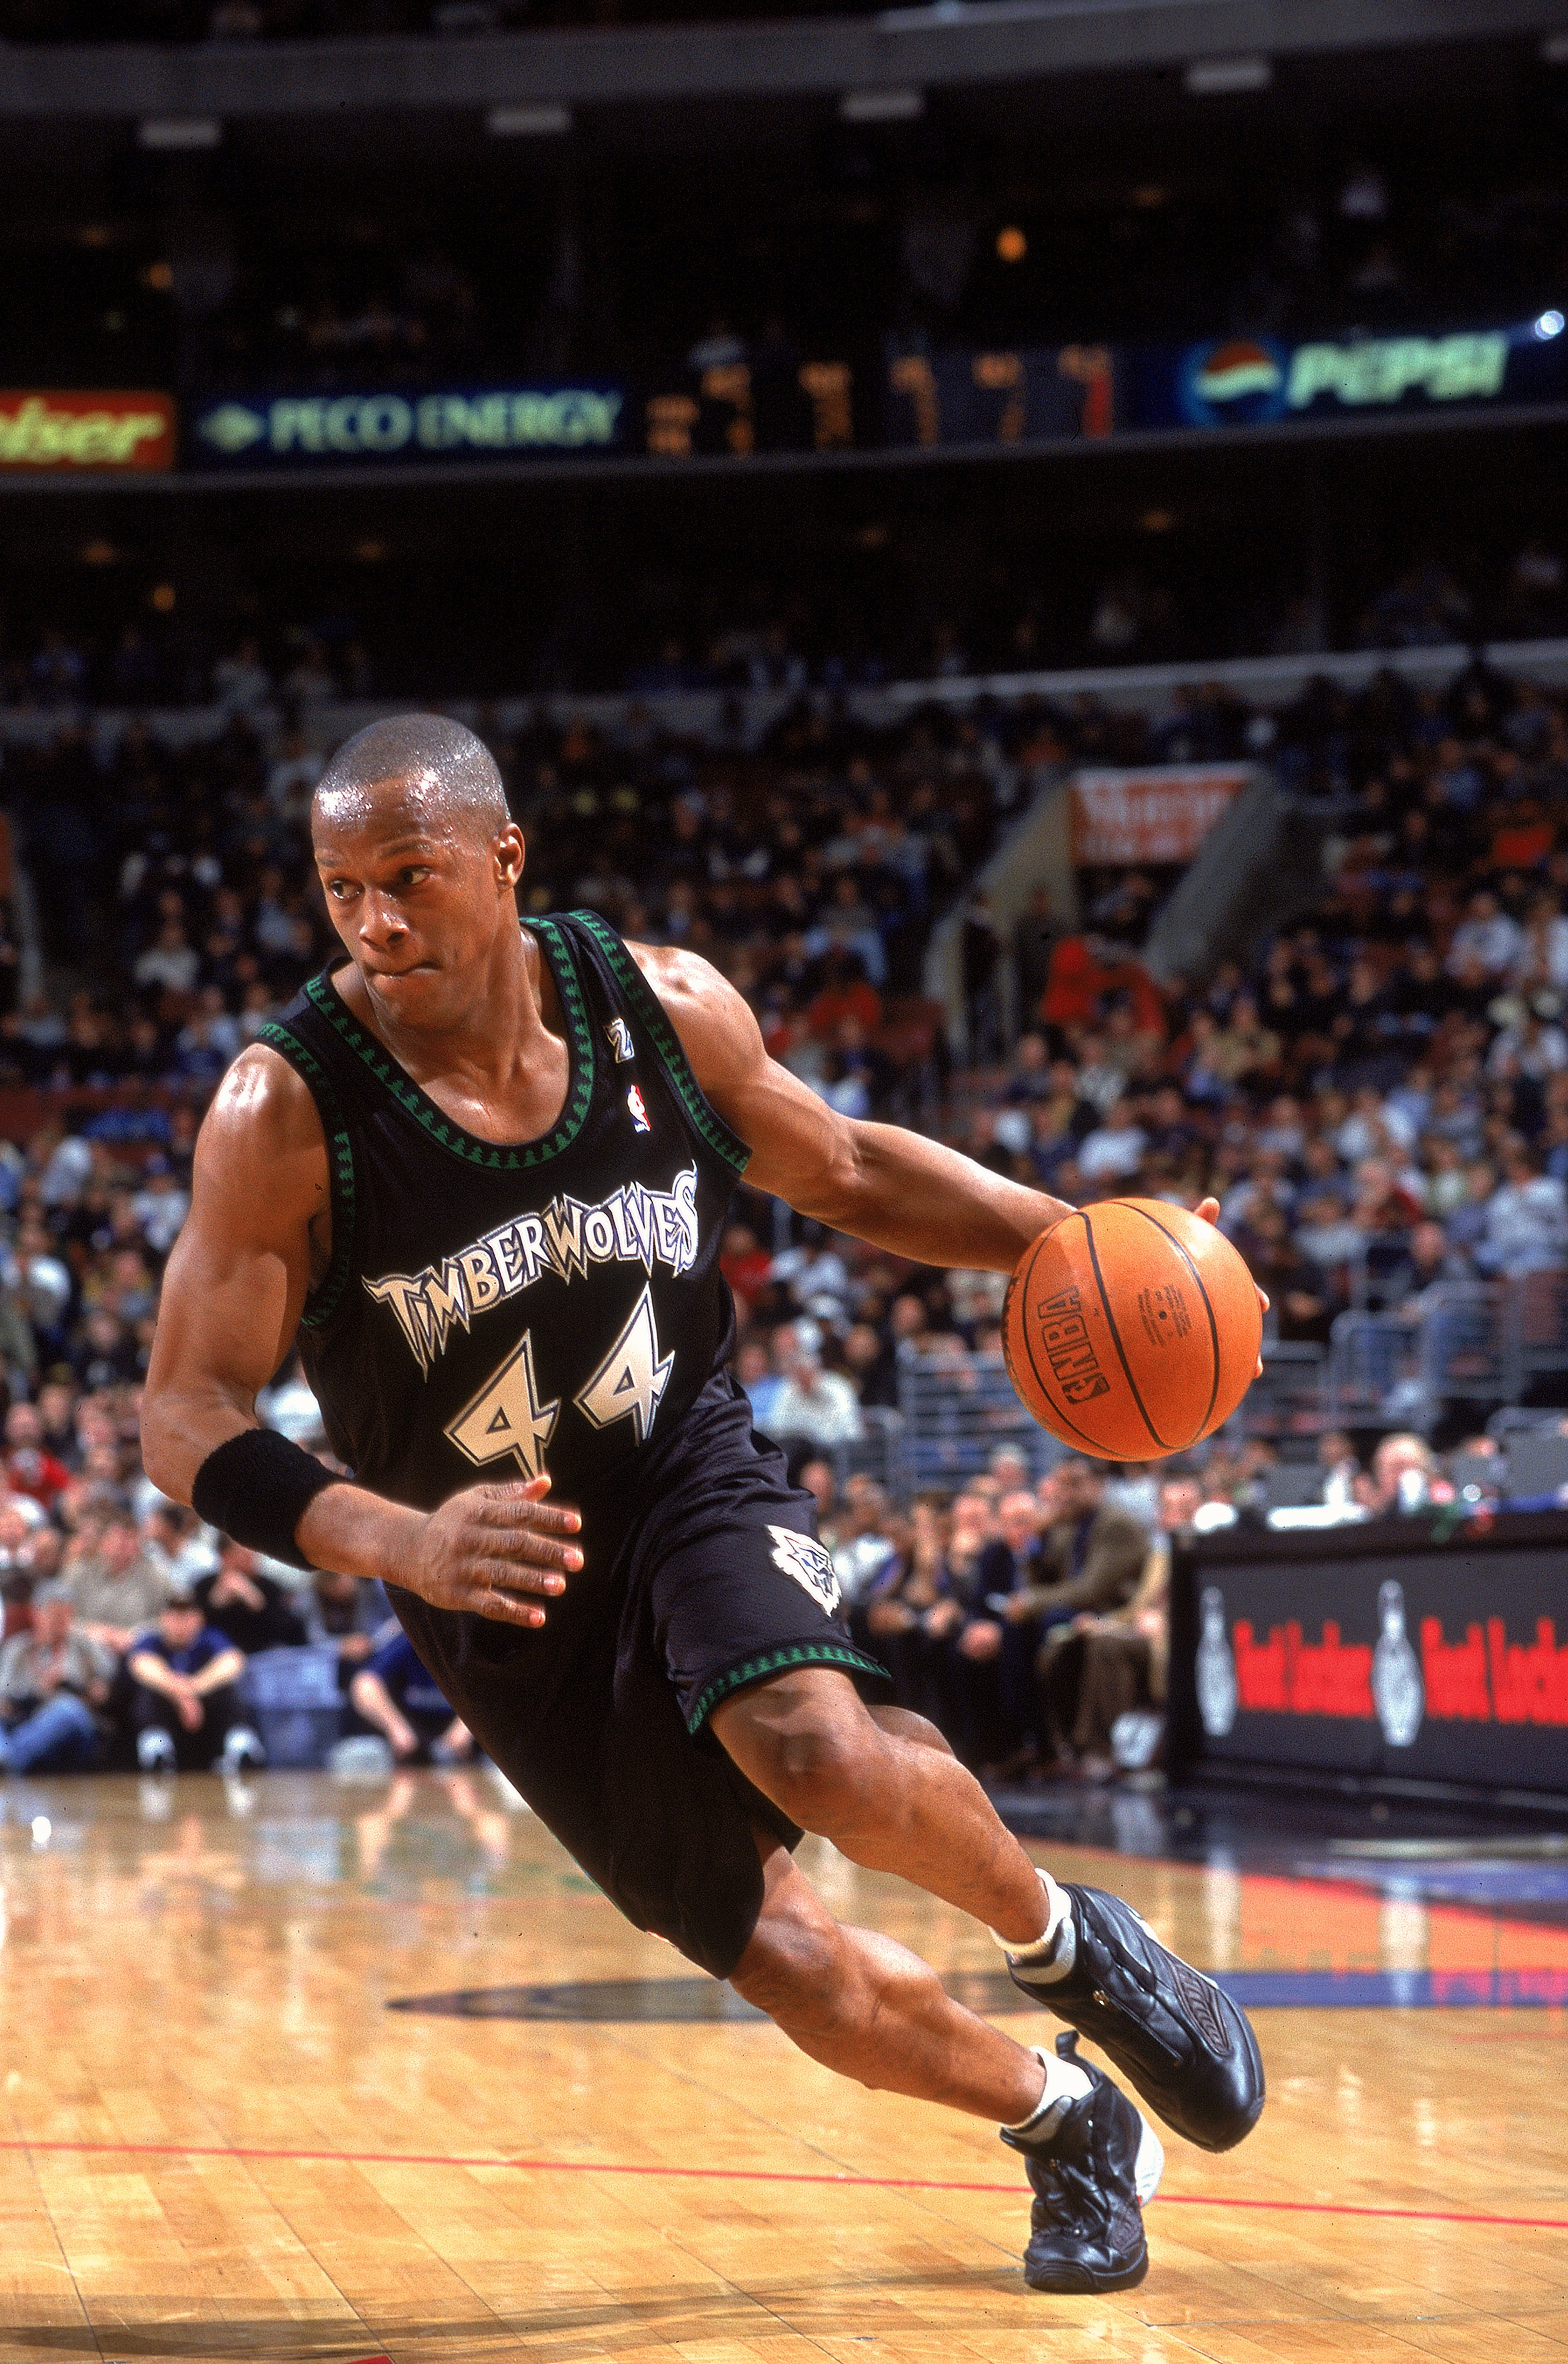 11 Dec 2000:  Anthony Peeler #44of the Minnesota Timberwolves takes the ball to the basket during the game against the Philadelphia 76ers at the First Union Center in Philadelphia, Pennsylvania. The Timberwolves defeated the 76ers 96-91. NOTE TO USER: It